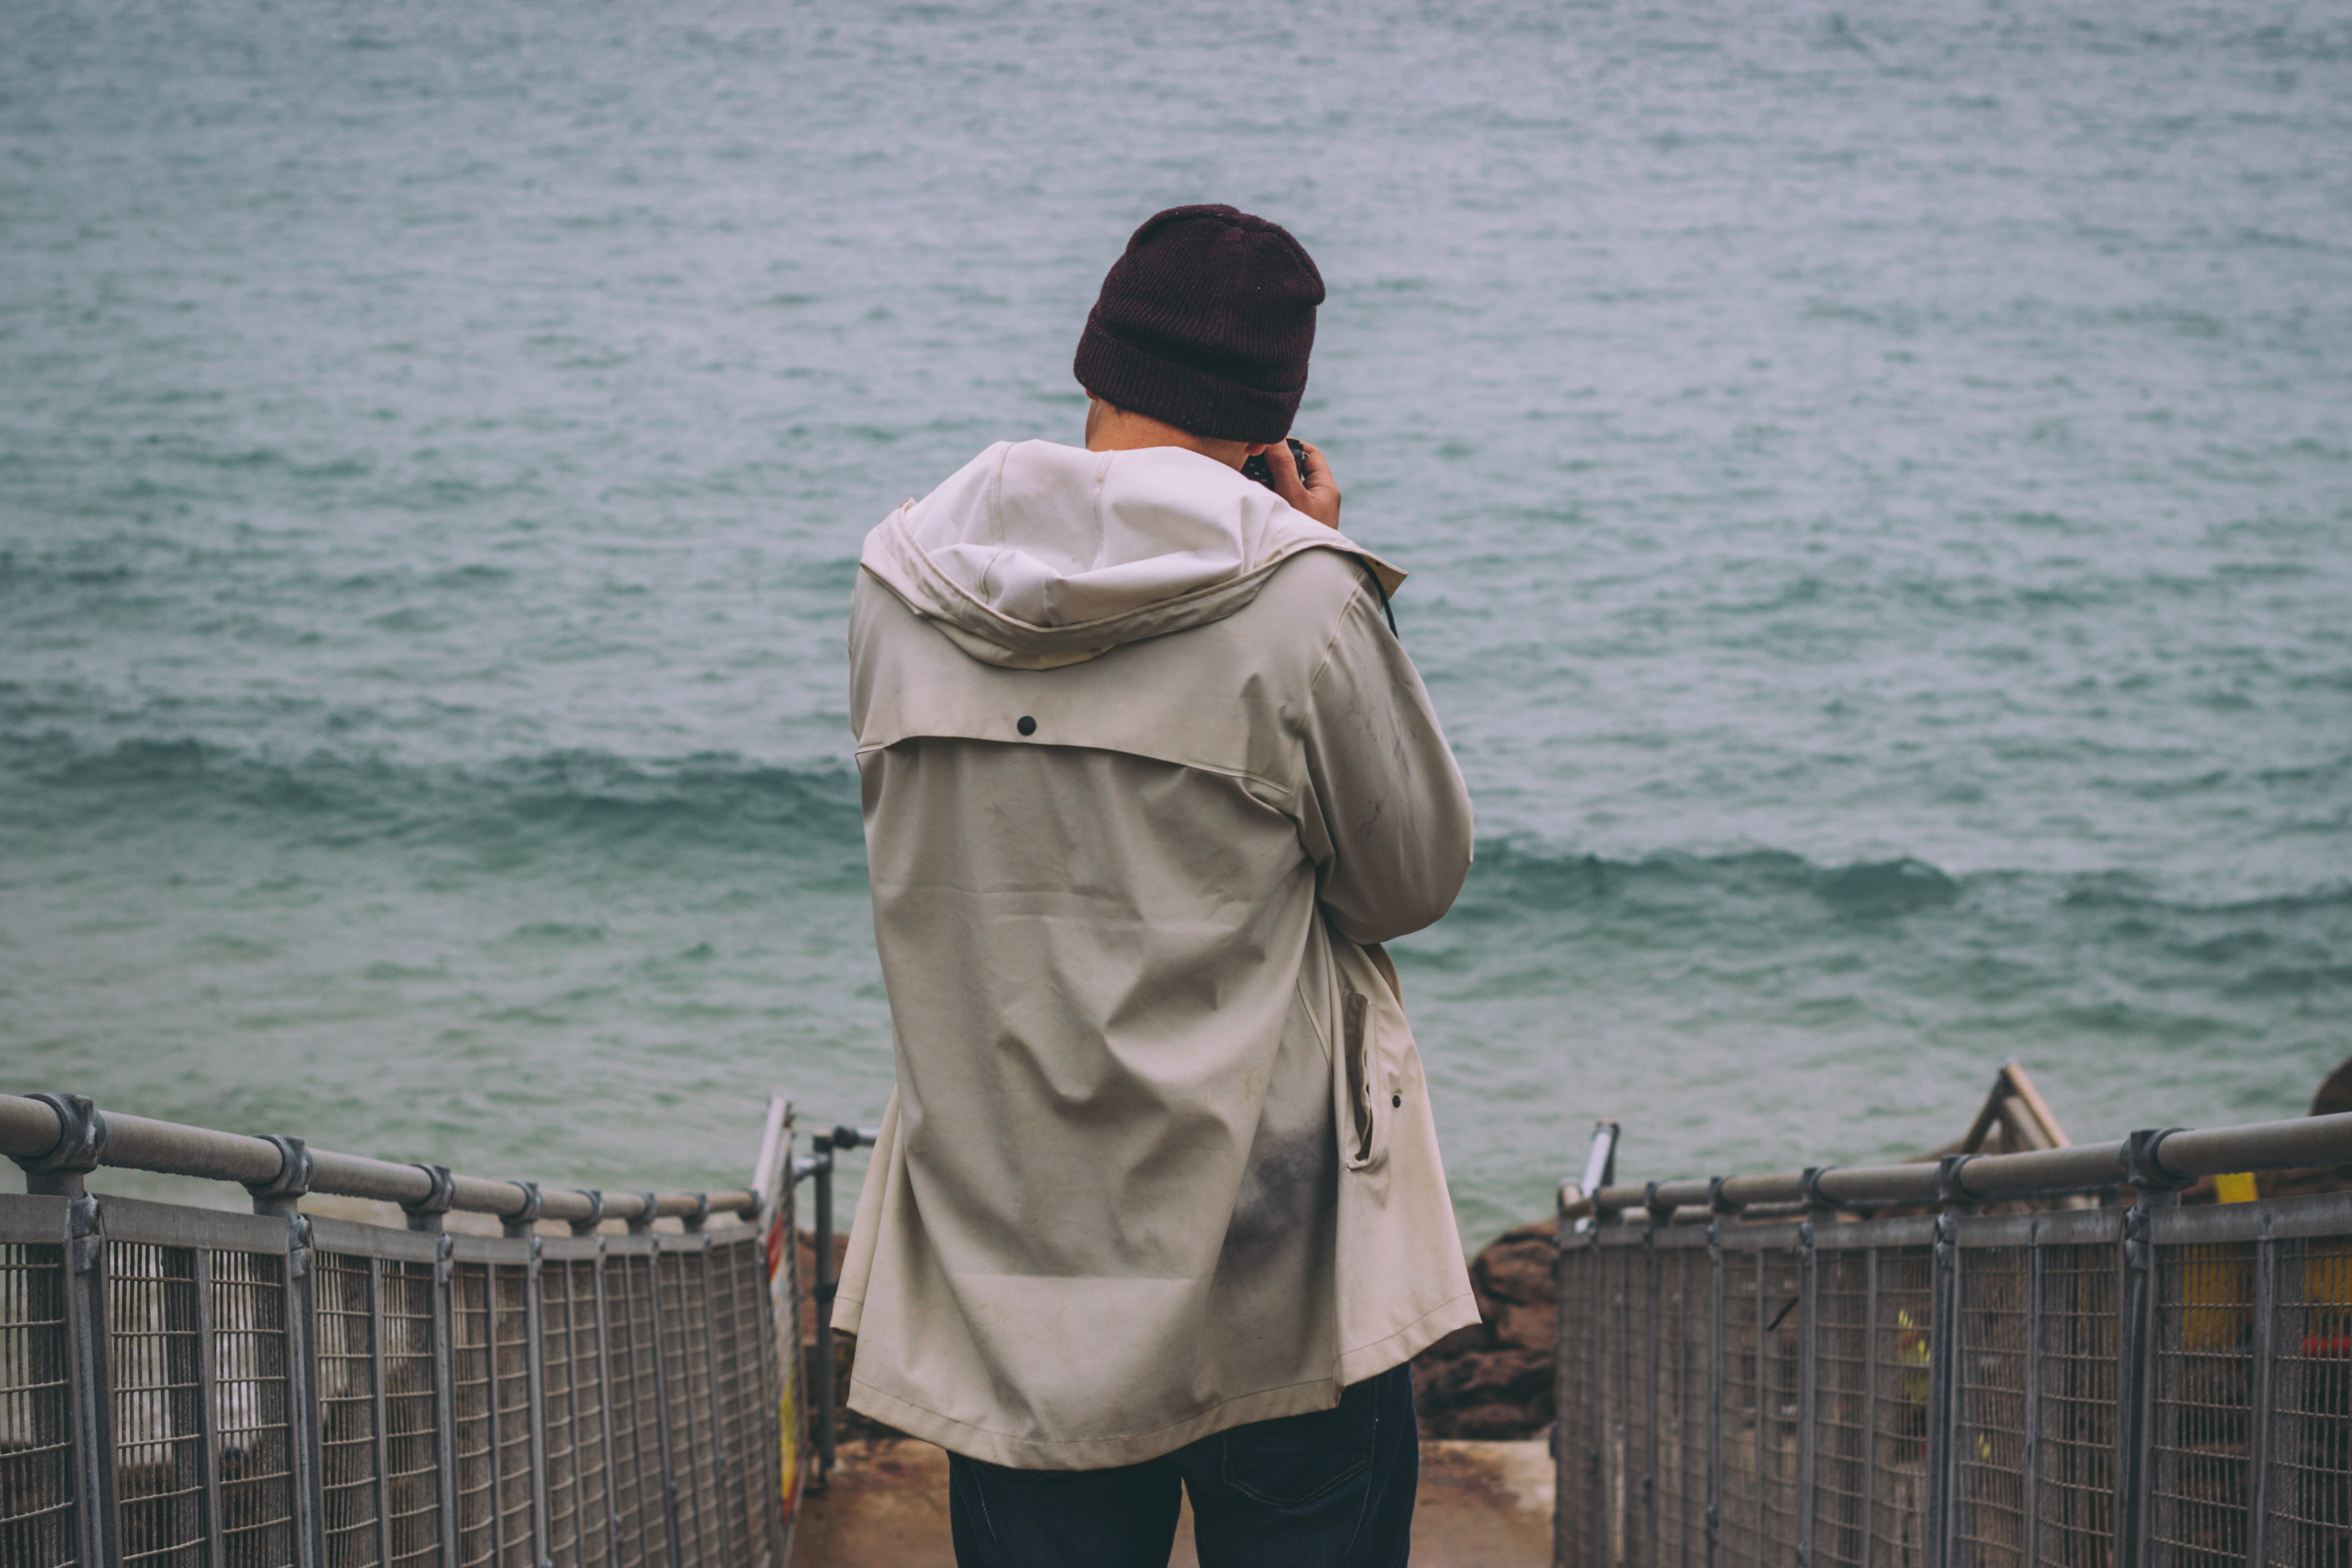 A man wearing a fall jacket on a fenced path, walking toward the sea with a camera